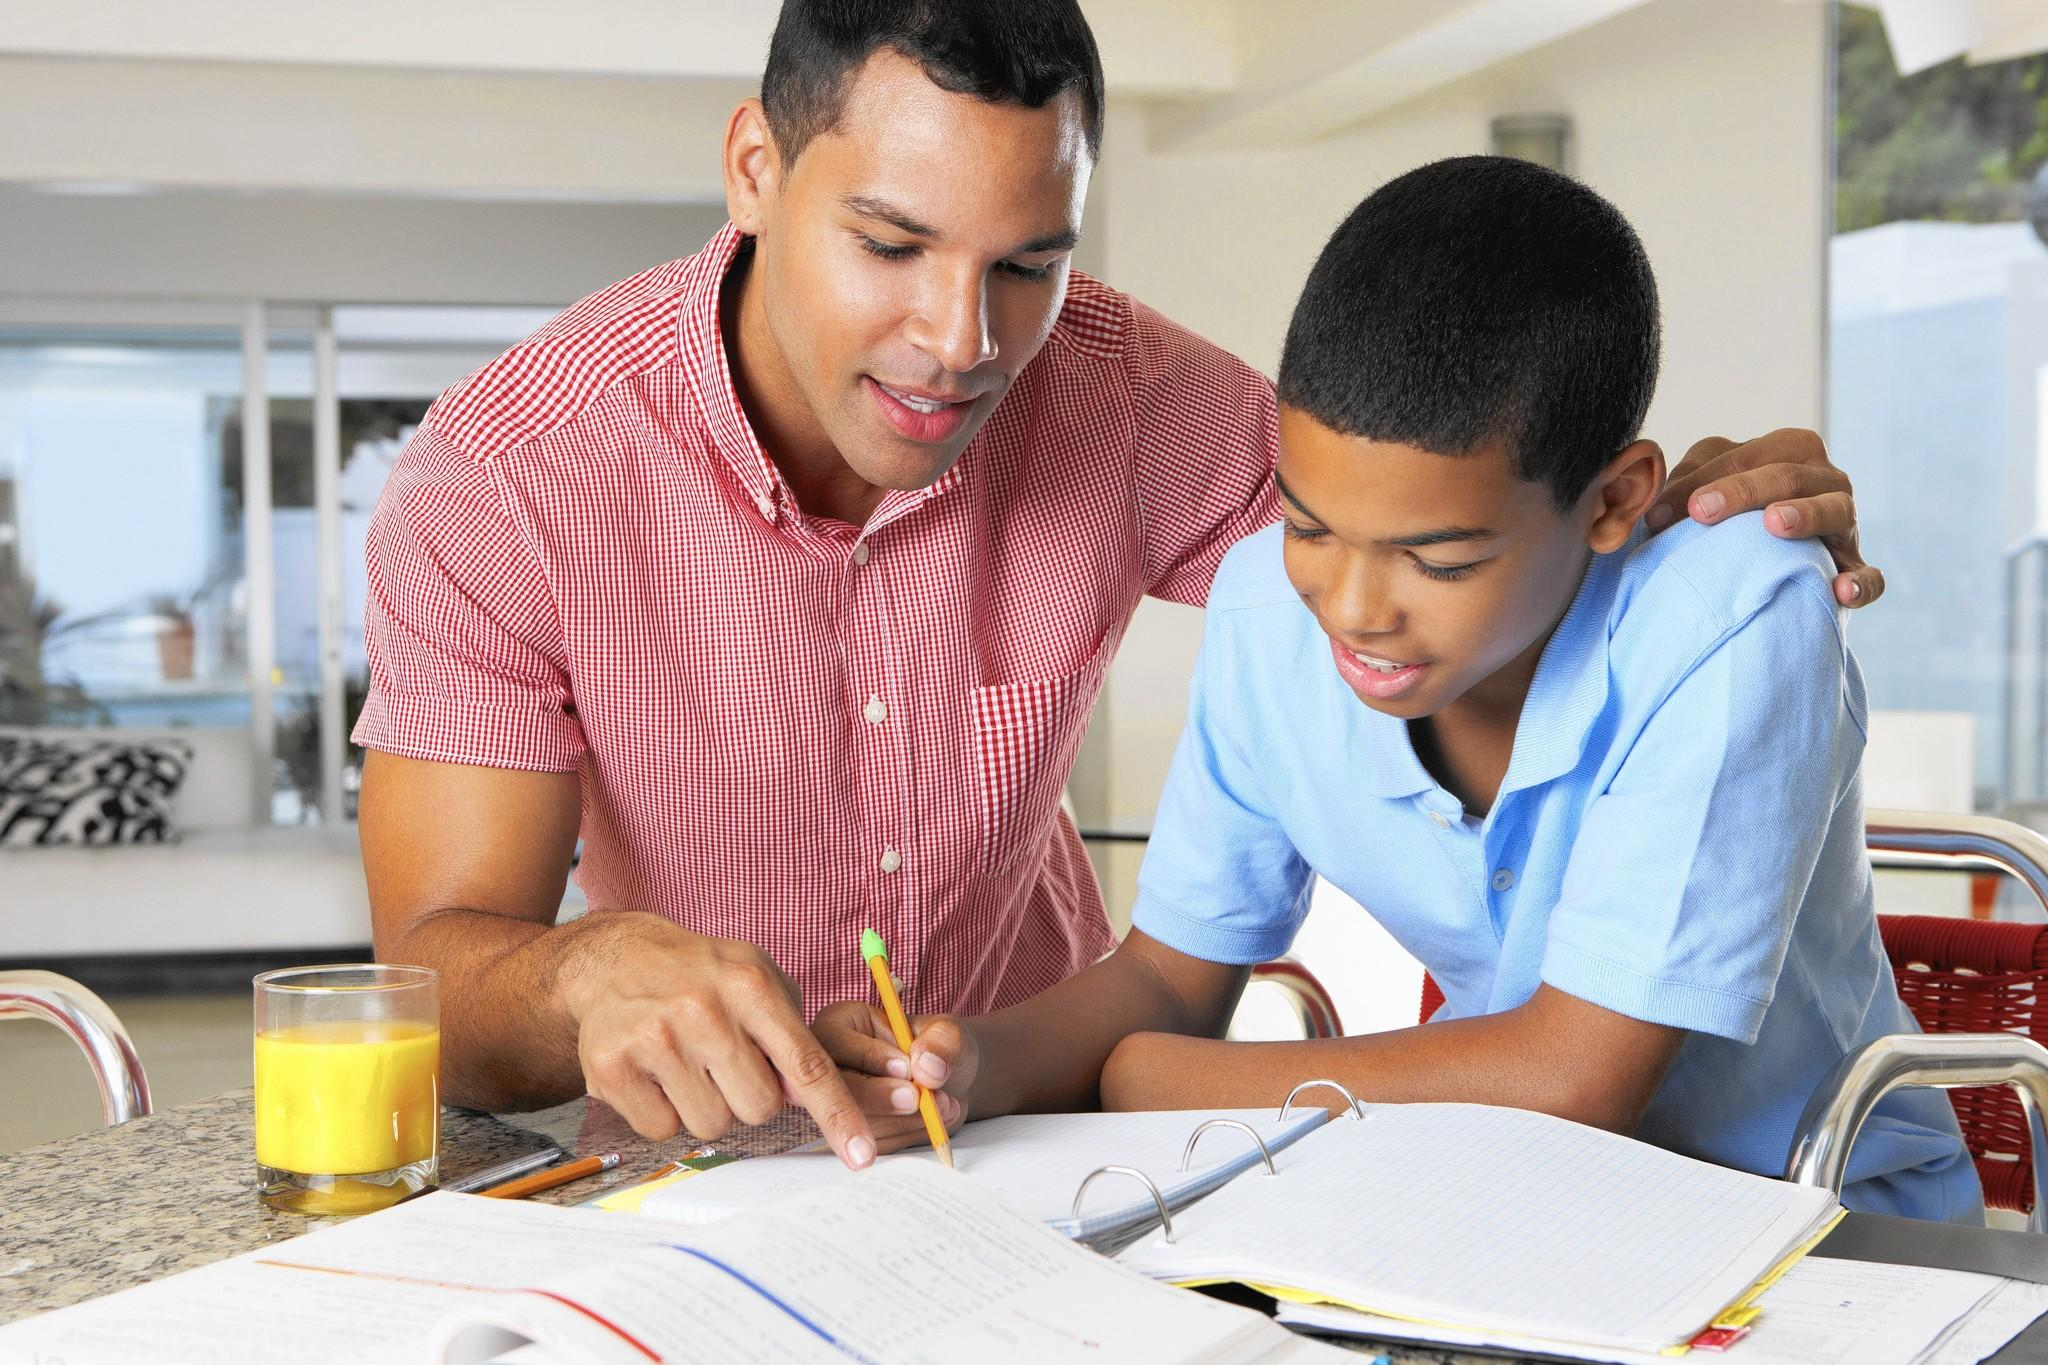 helping homework is fine experts say but don t take over   istock